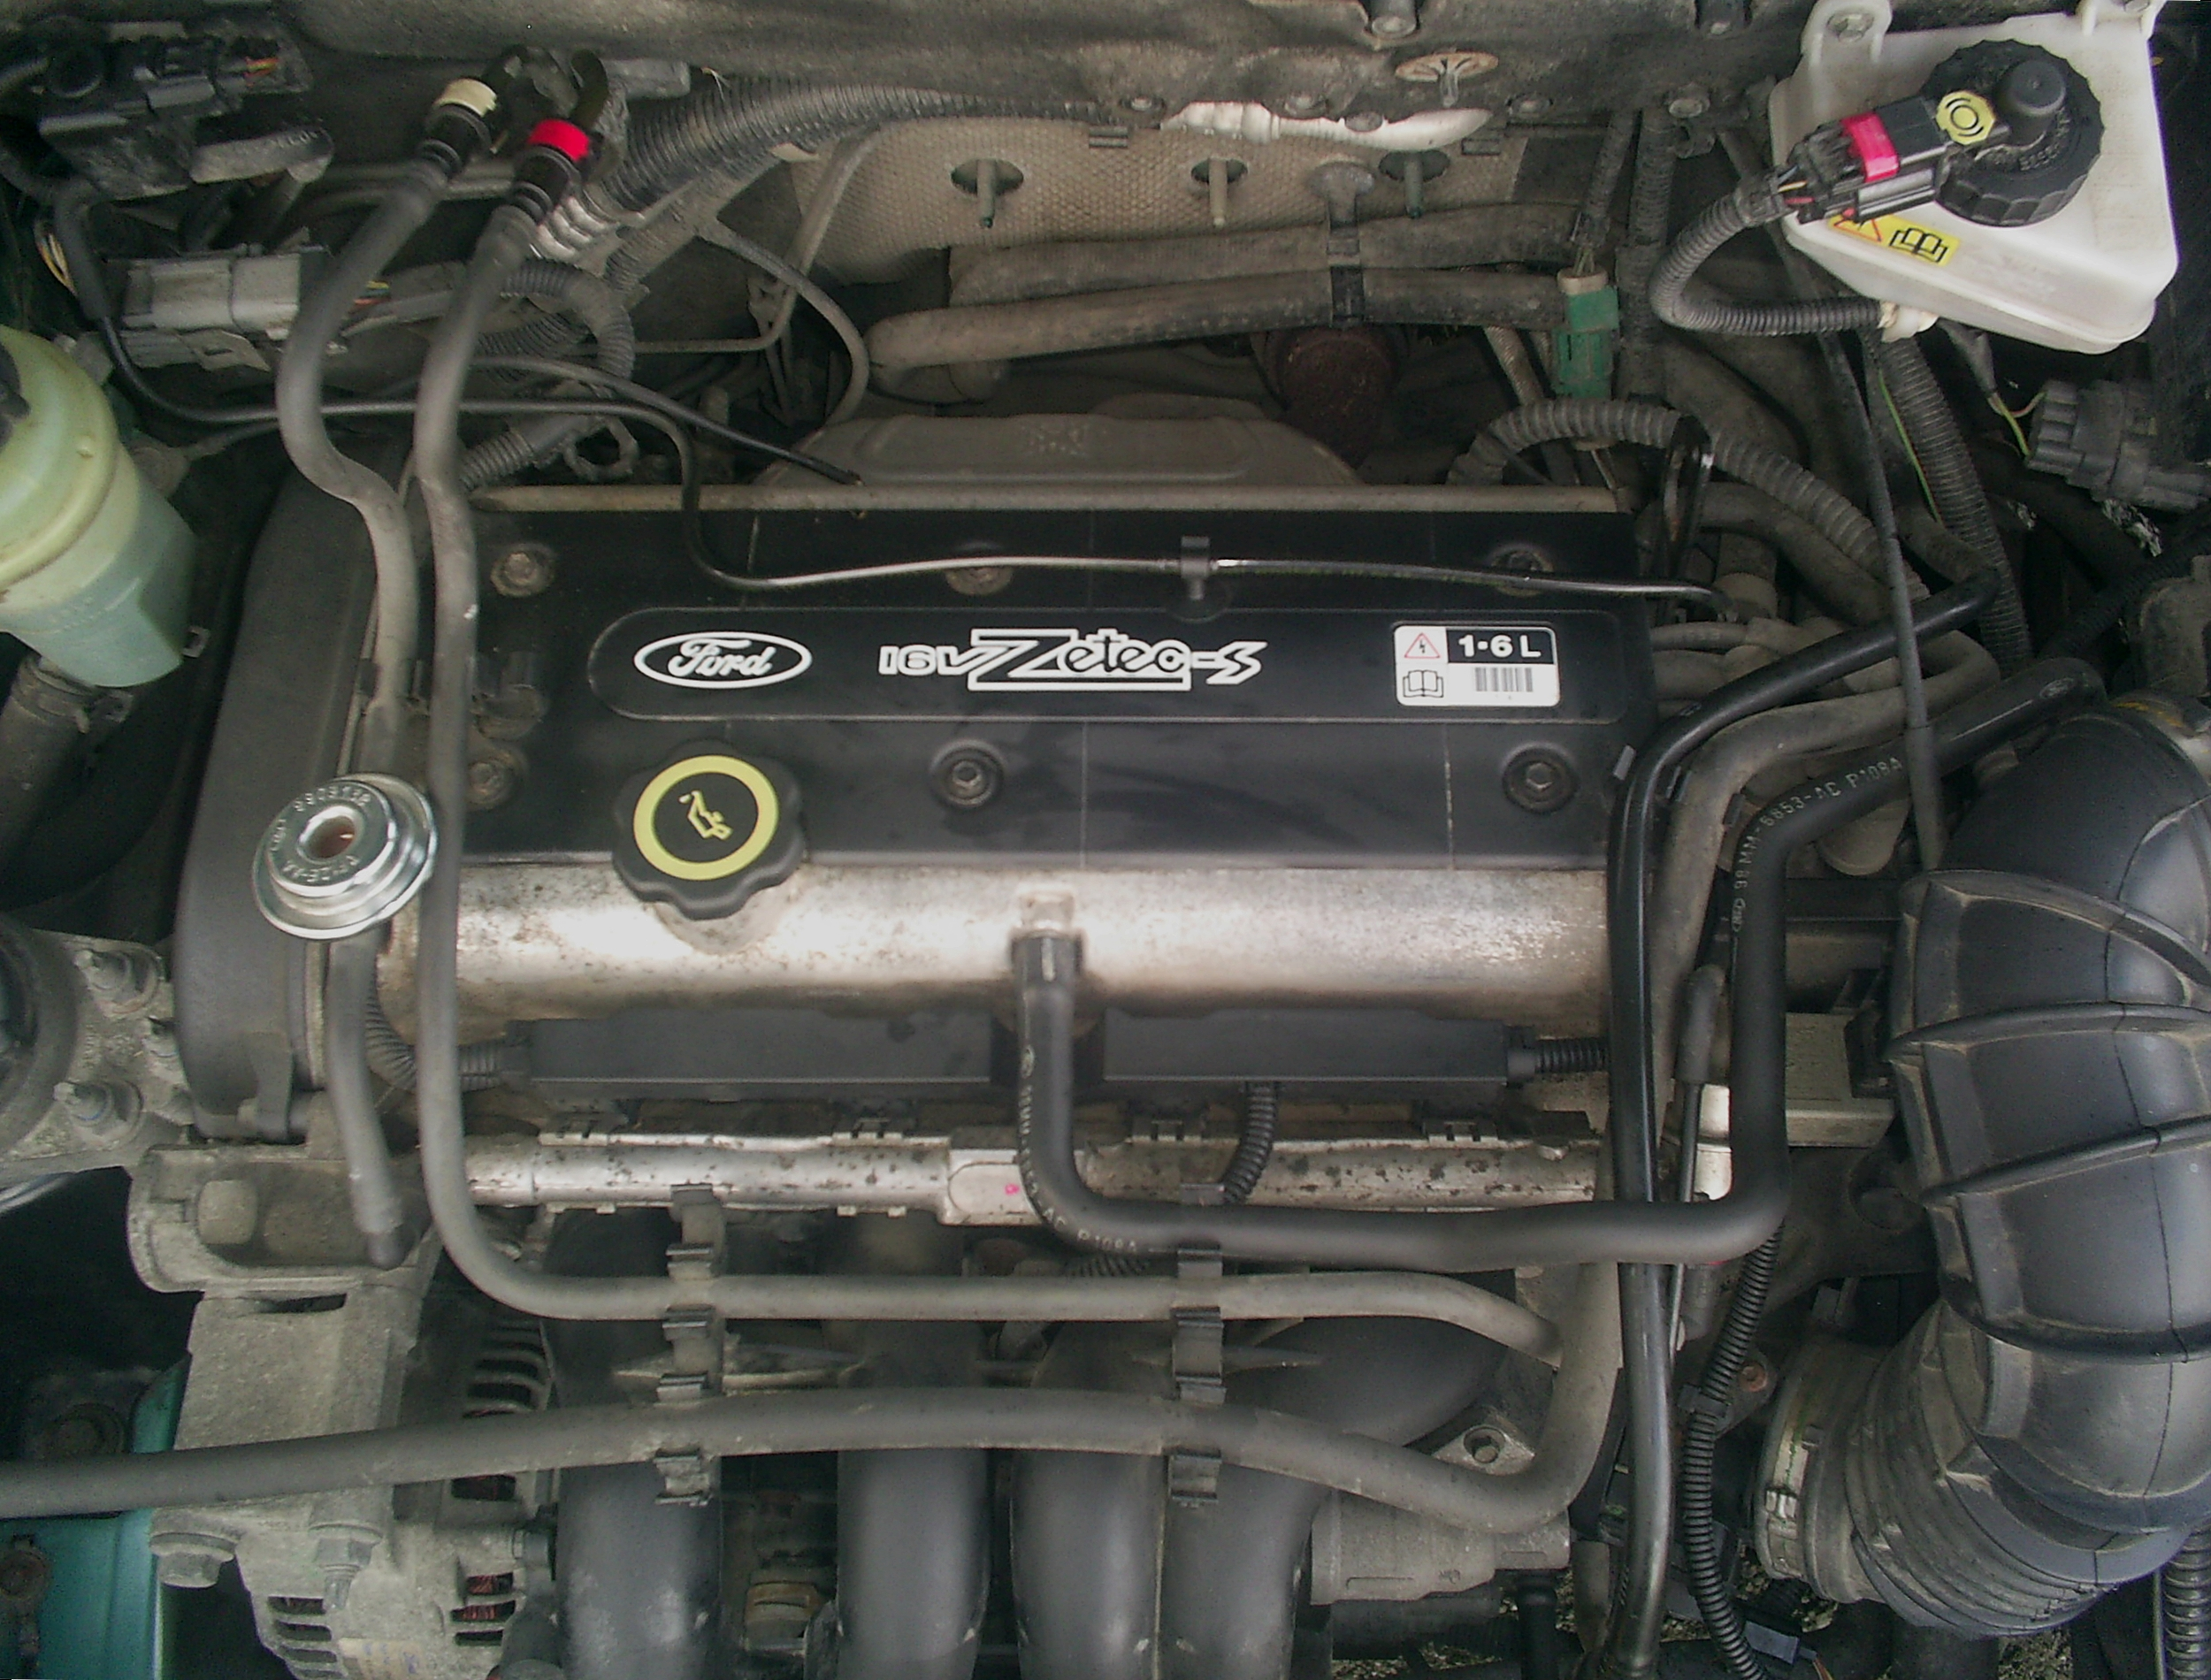 Description 1999 Ford Zetec-R engine.jpg